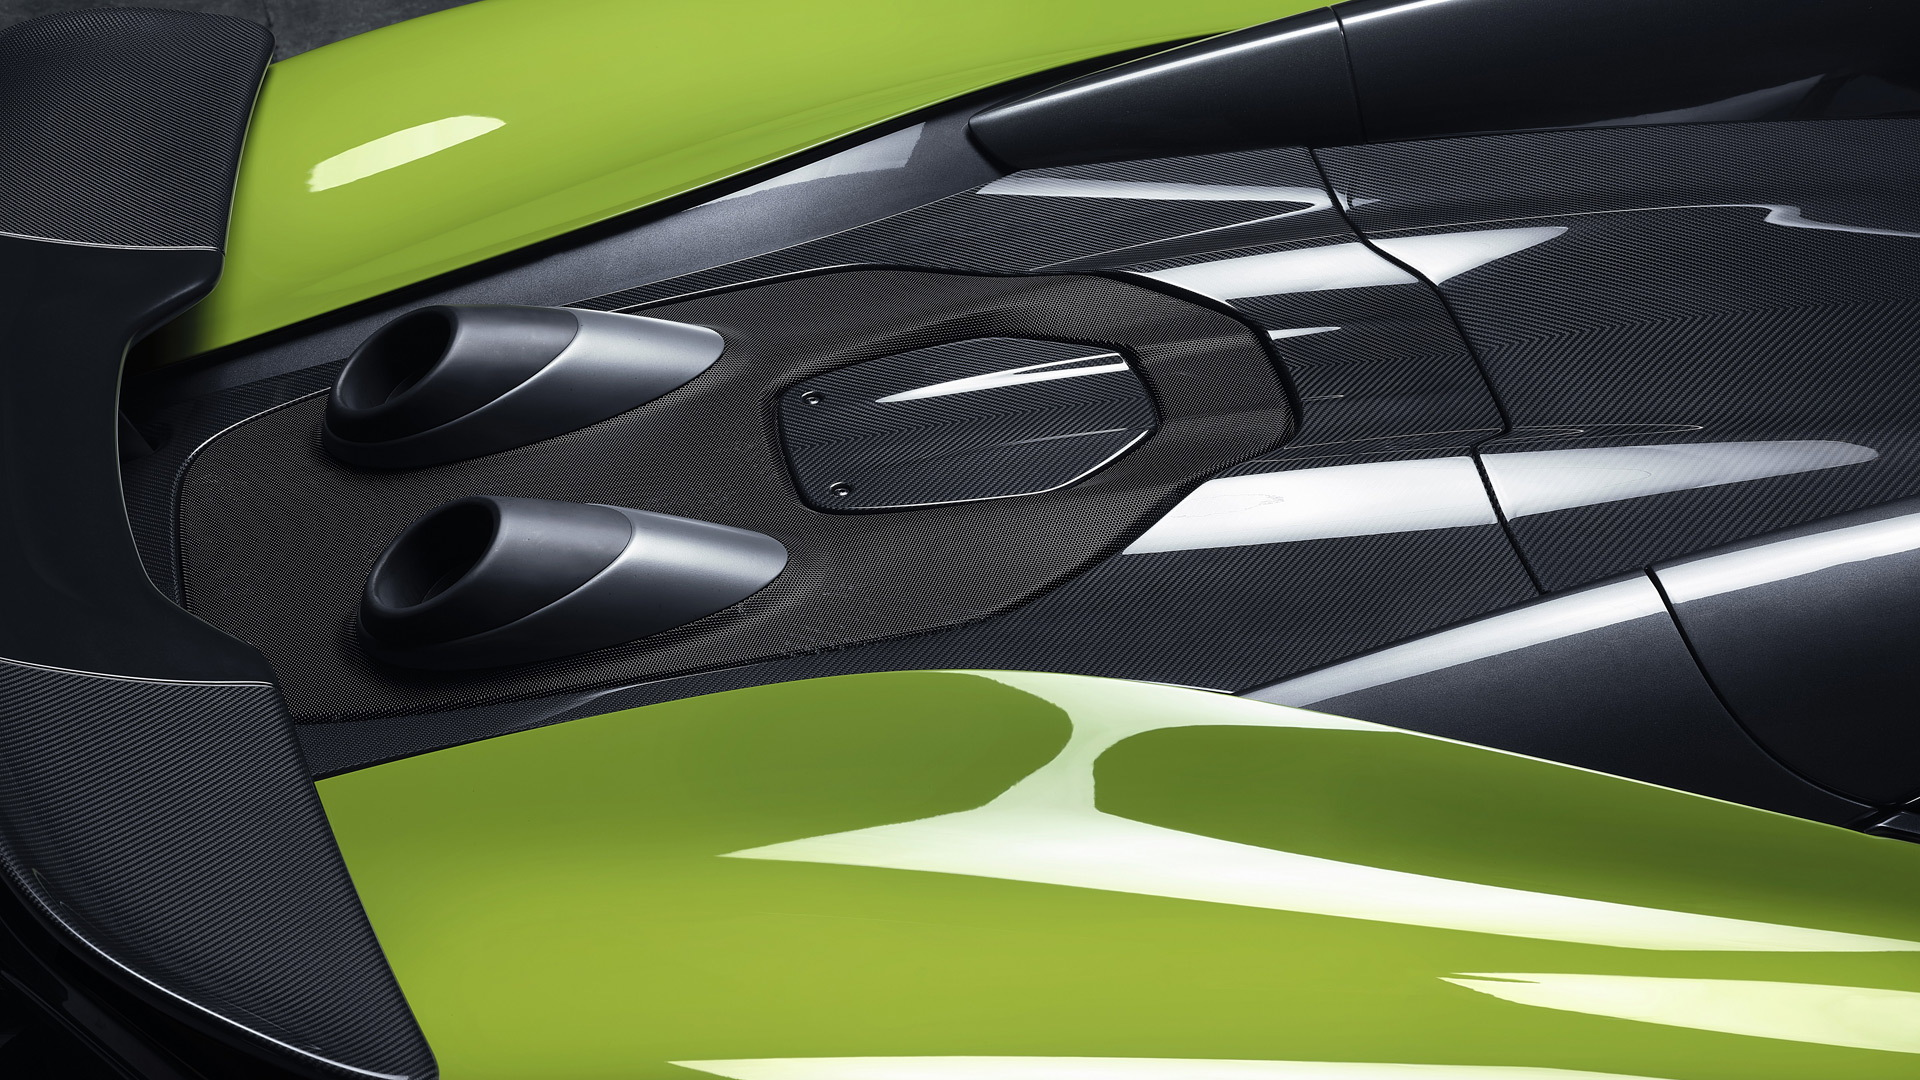 Teaser most likely shows McLaren 600LT Spider